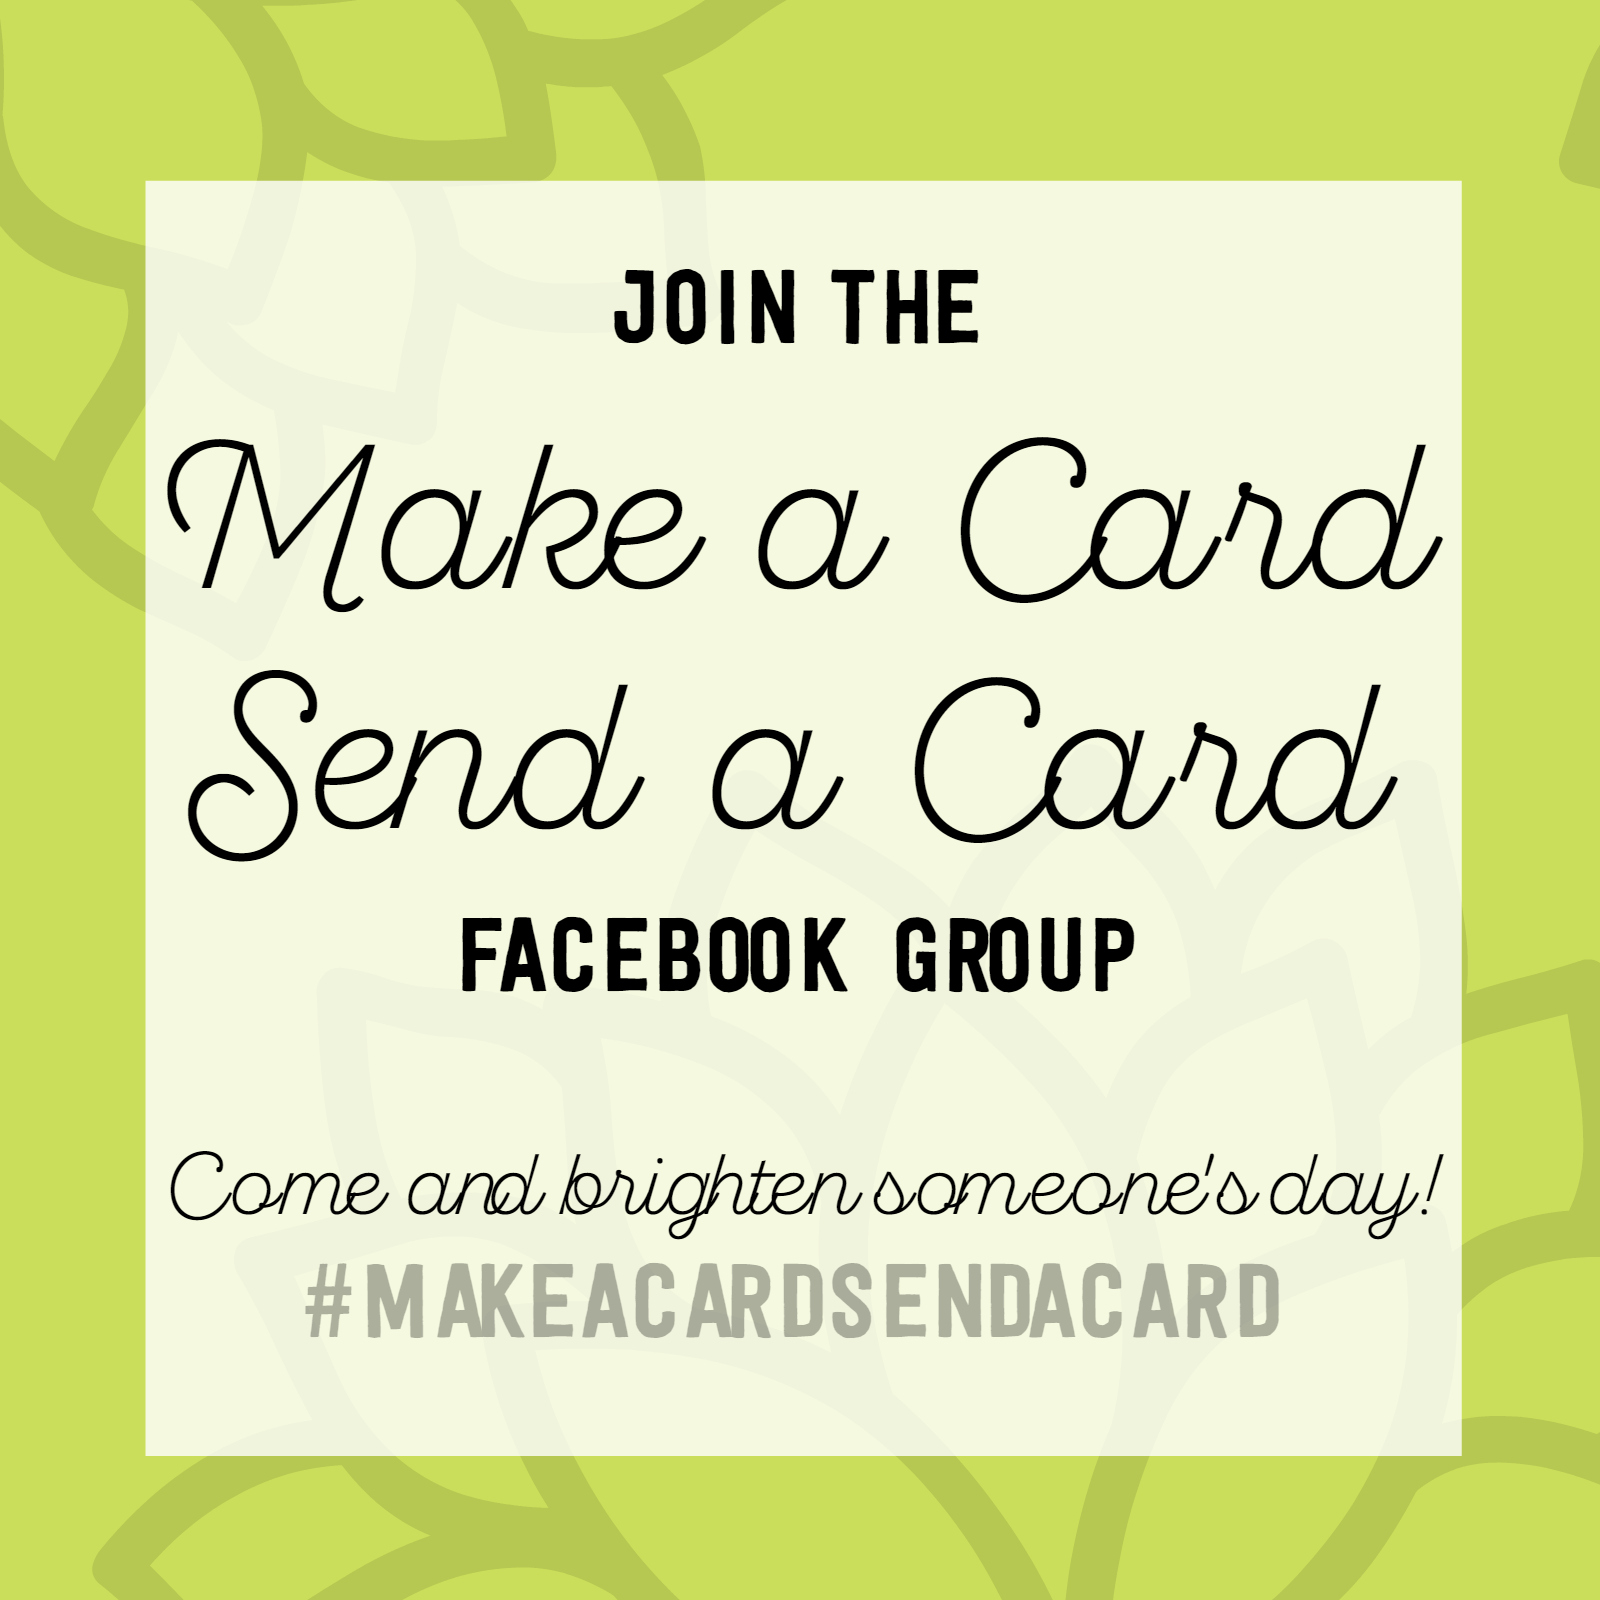 Make a Card Send a Card Facebook Group